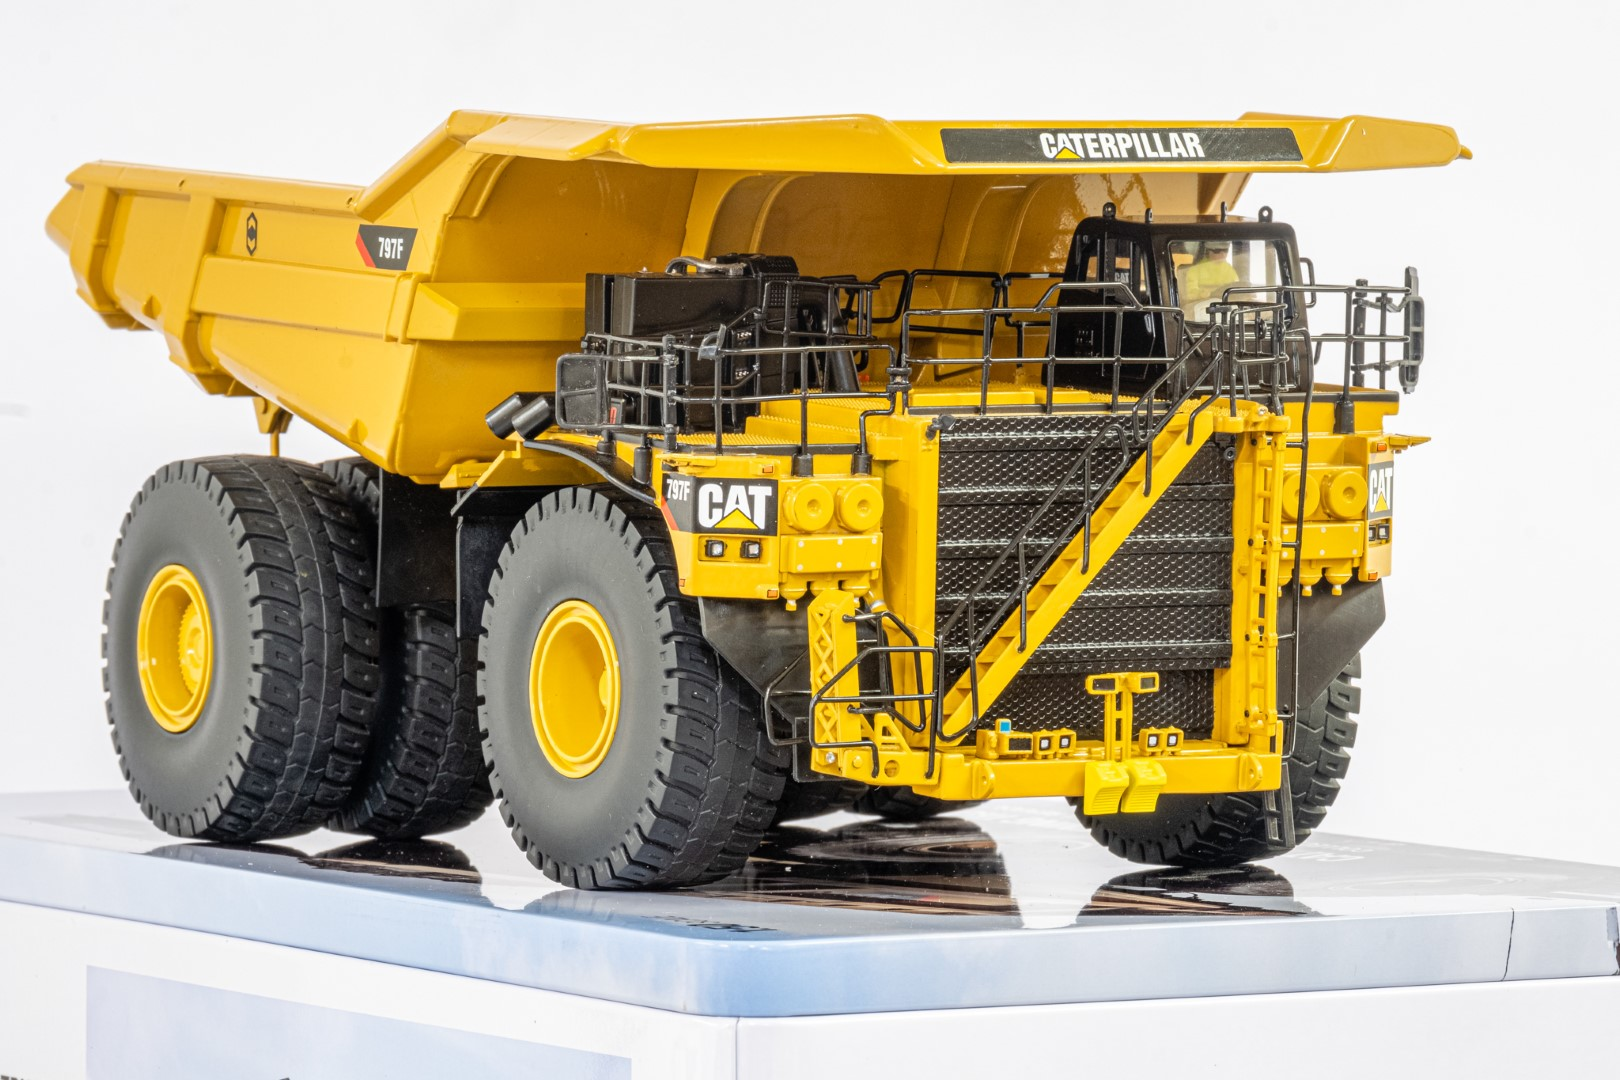 Diecast Masters CAT 797F Tier 4 Mining Truck - Mint condition - Image 6 of 6